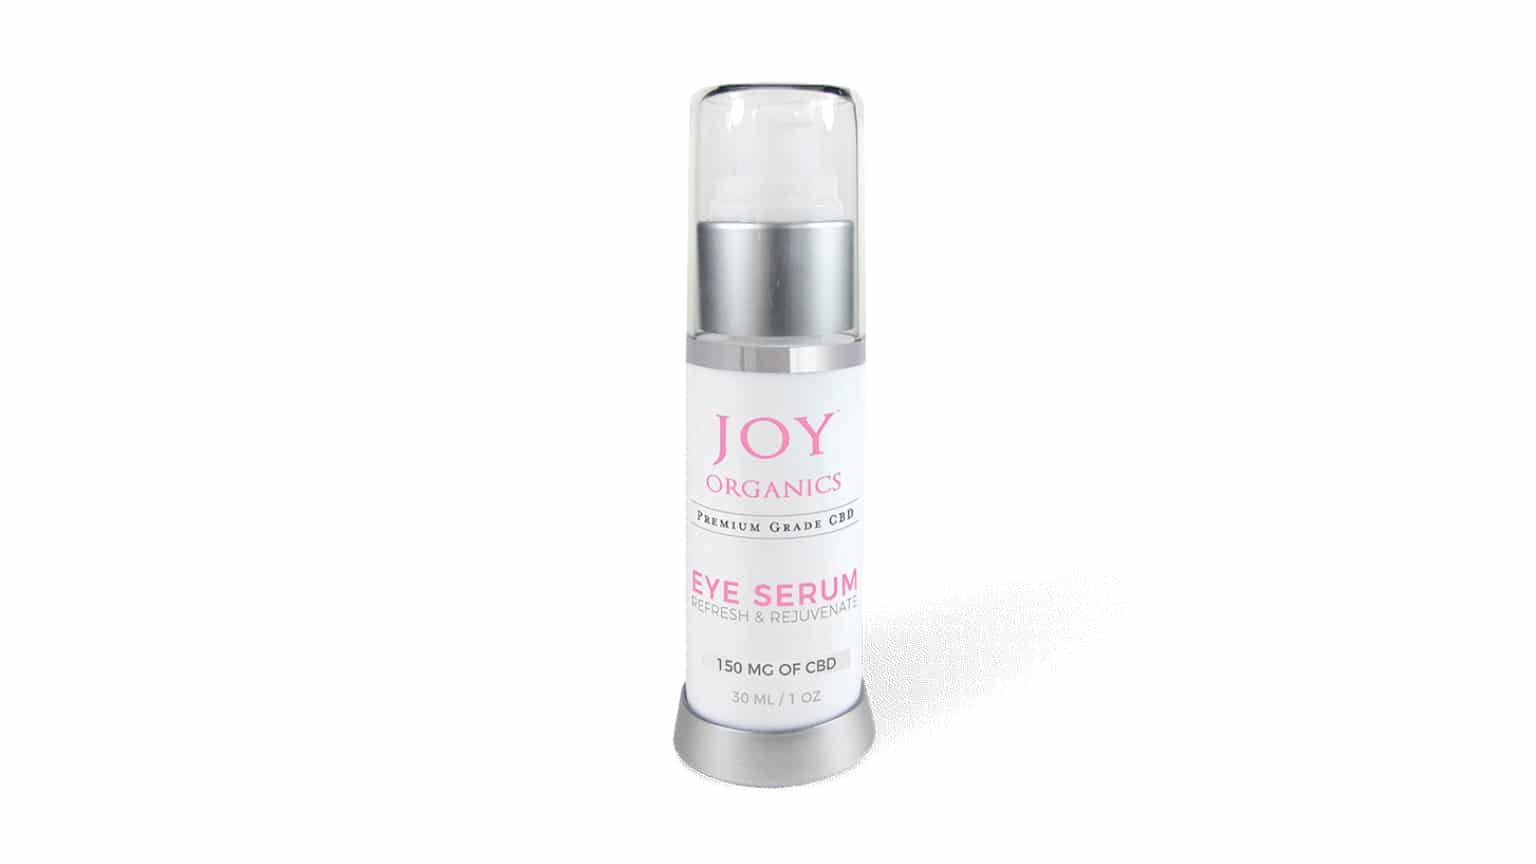 joy-organics-cbd-eye-serum